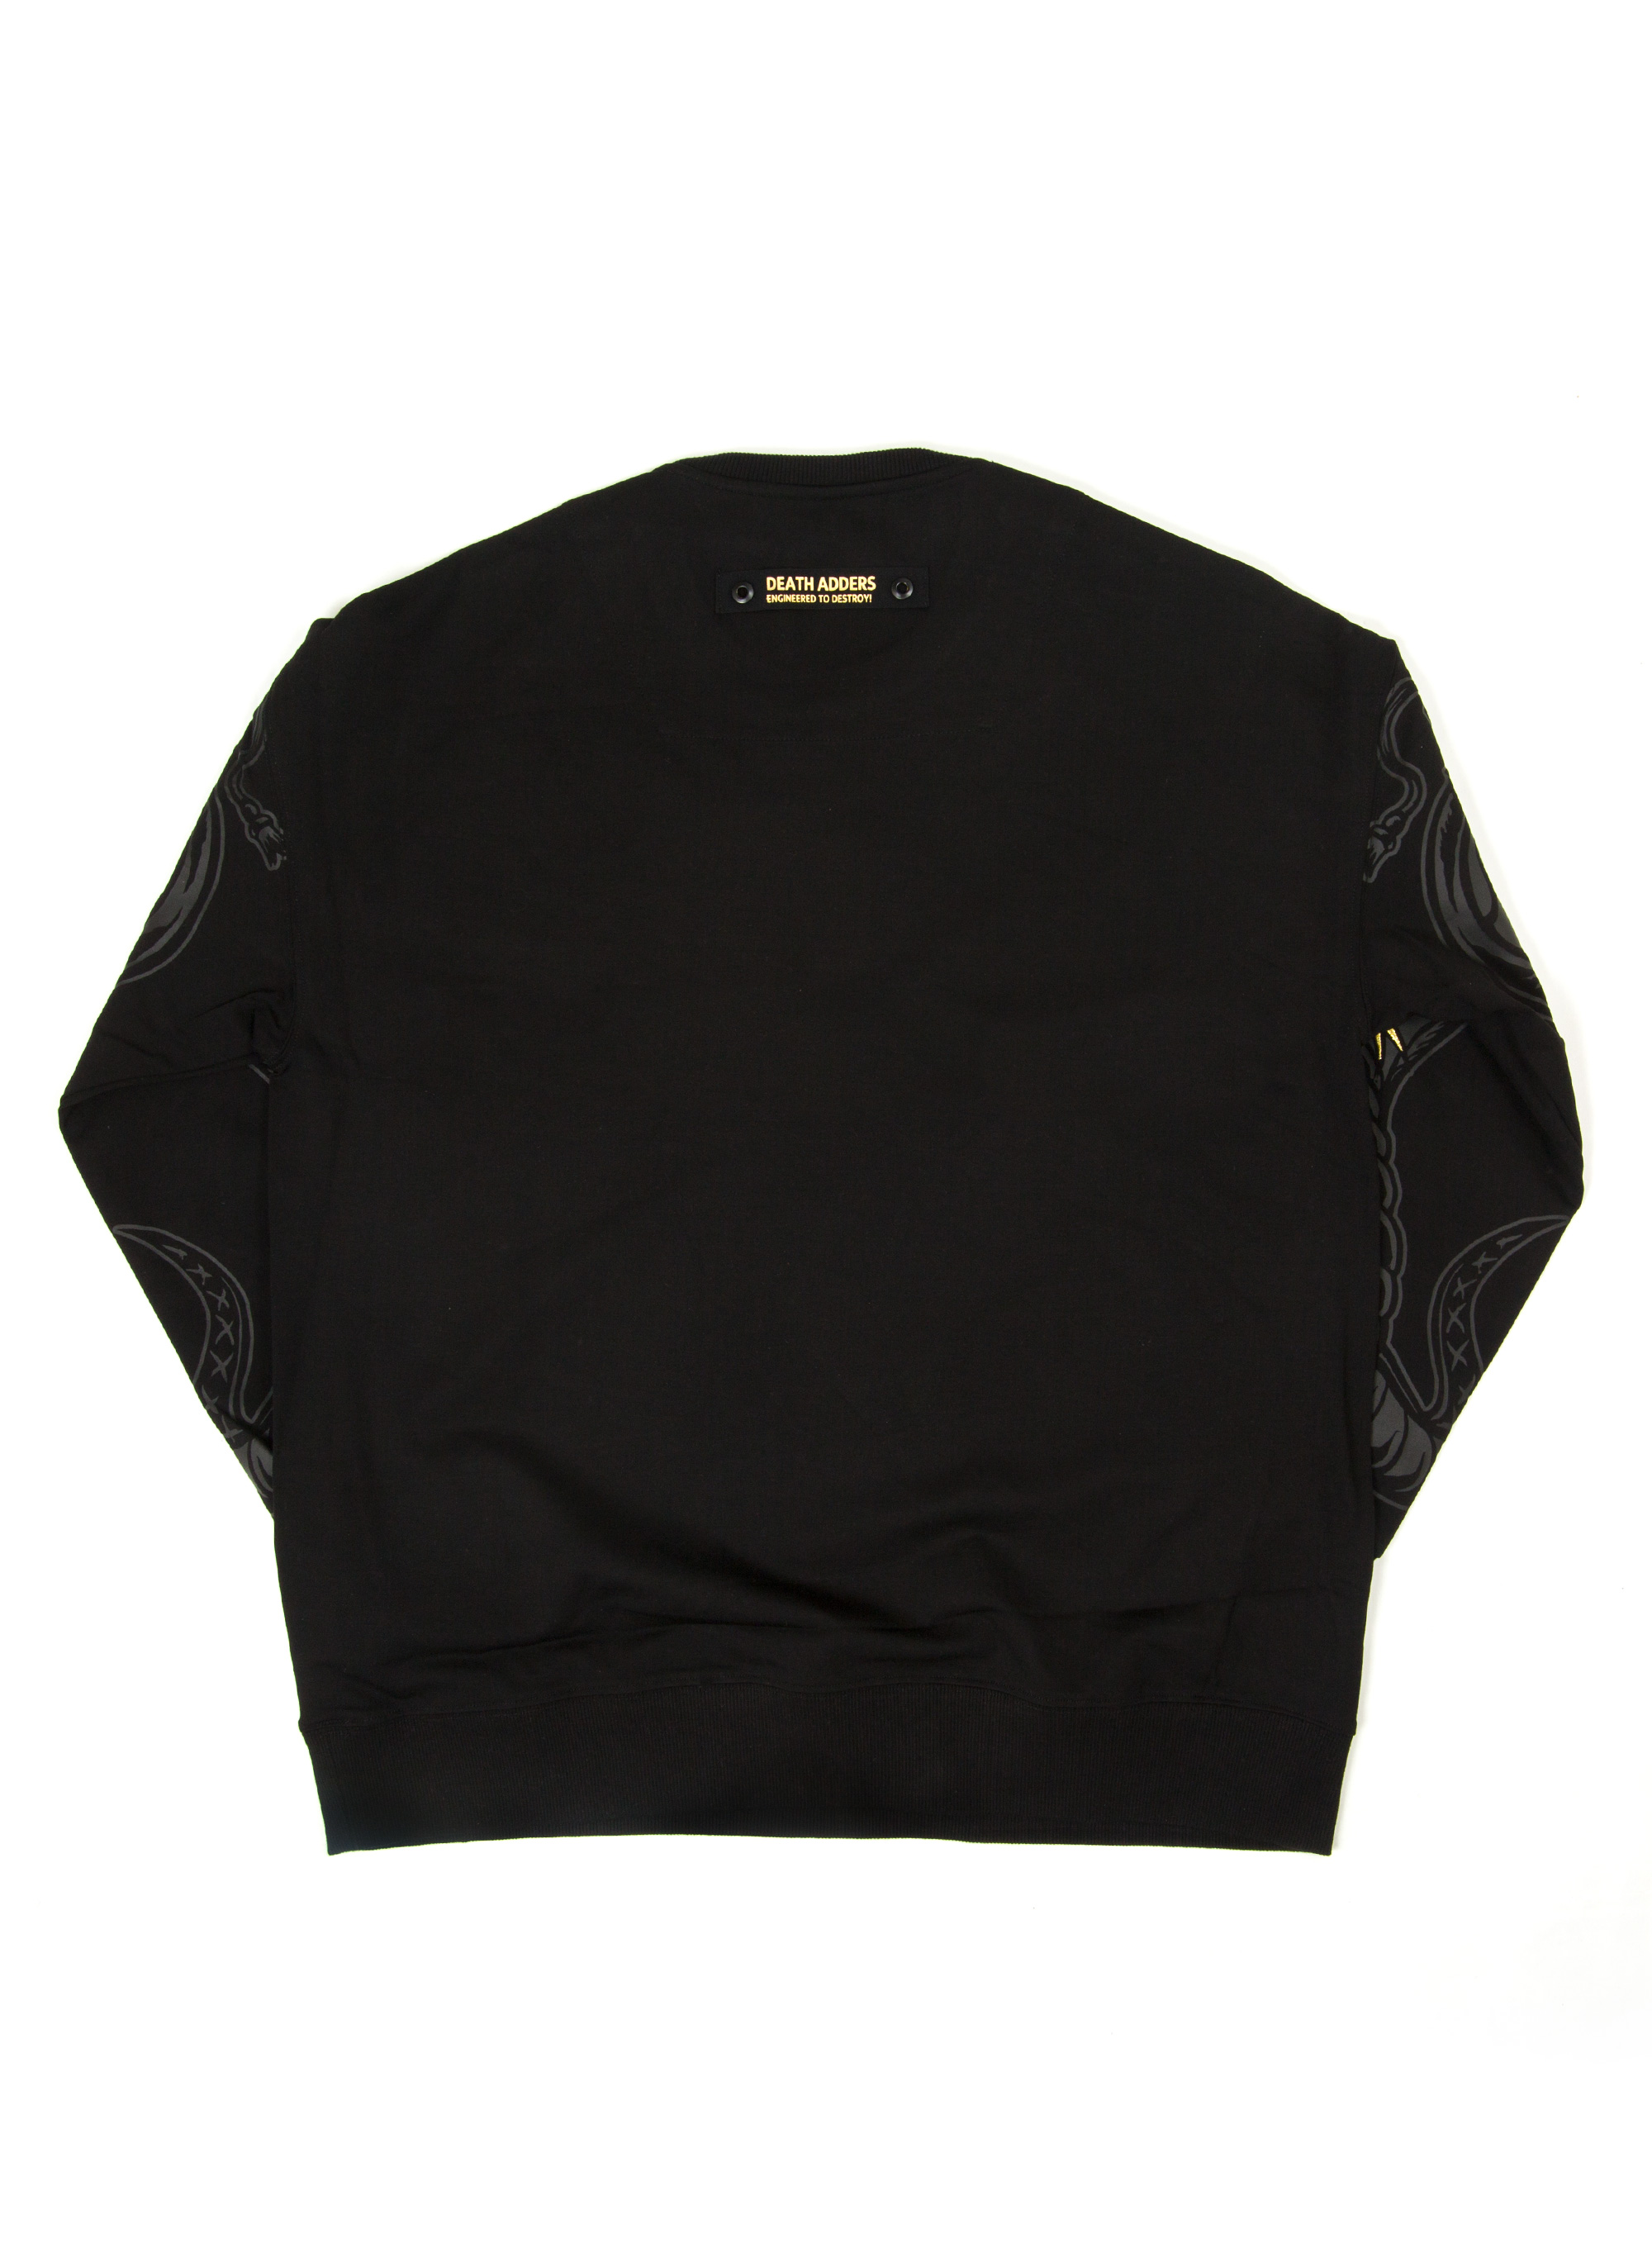 Death Cobra Crewneck